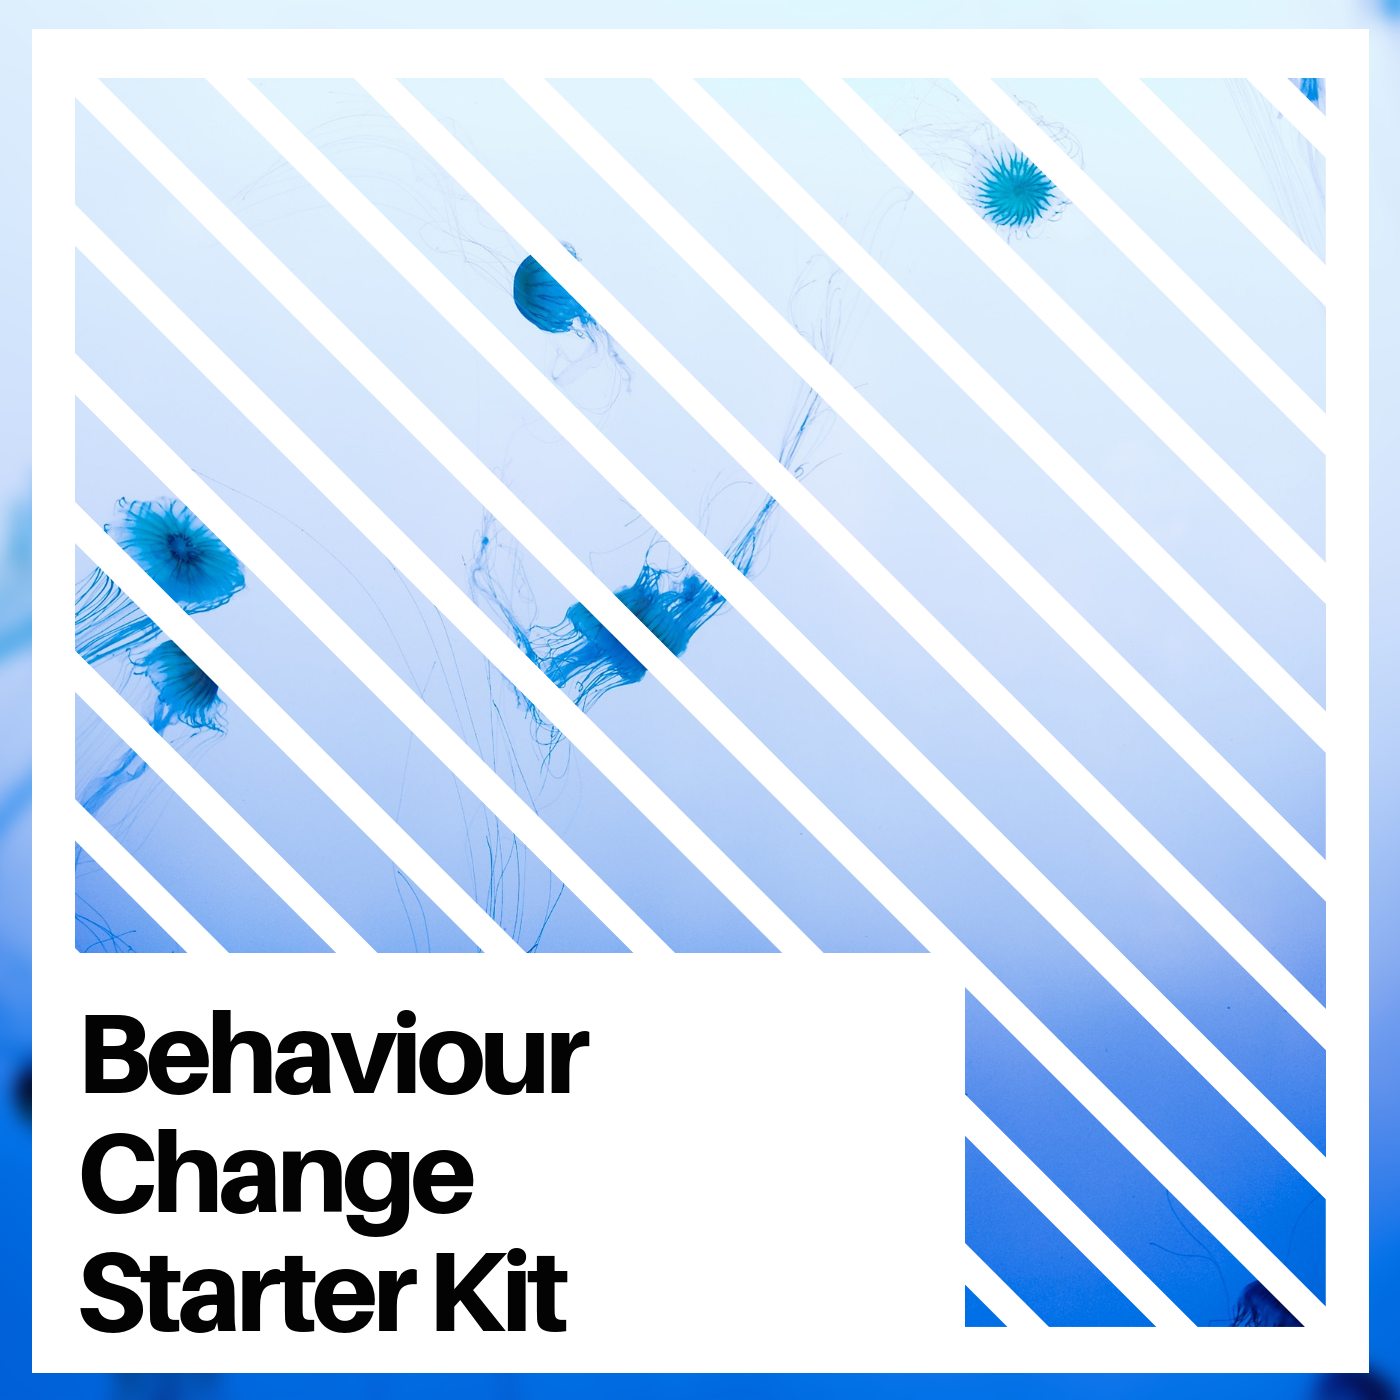 Behaviour Change Starter Kit